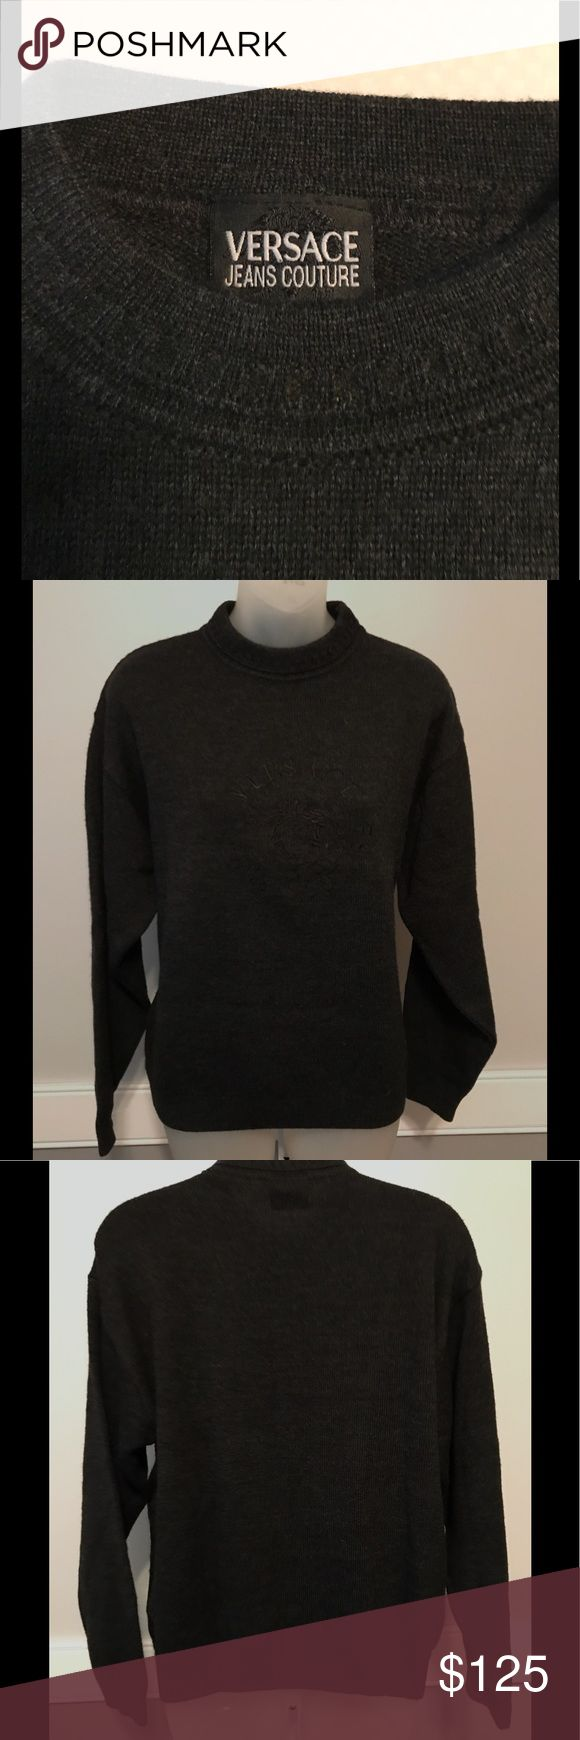 """Vintage Versace sweater - understated elegance. A vintage Versace pullover sweater in excellent condition.  Versace logo on front  is in perfect condition. No size tag, however measures 21"""" across at underarms and is 24"""" long from neck to hem. Wool/acrylic blend. All reasonable offers welcome. Sweaters Crew & Scoop Necks"""